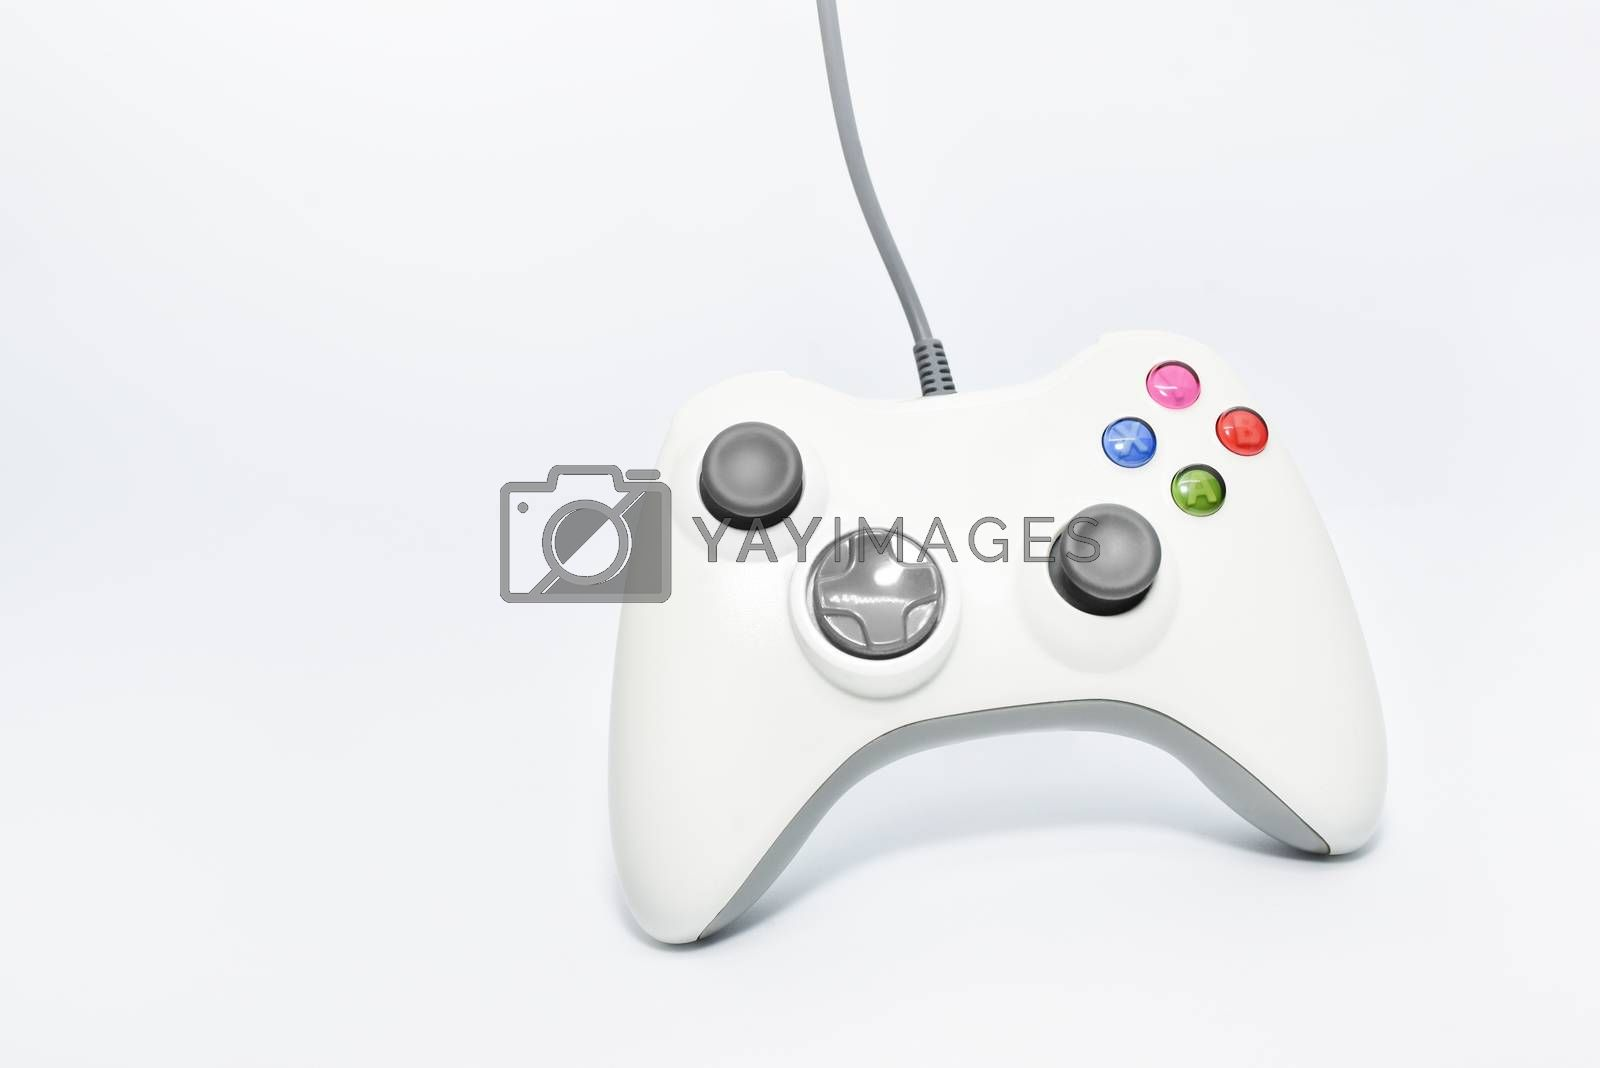 Gaming console game pad isolated on white background. Video gaming concept. Top view cut out composition.